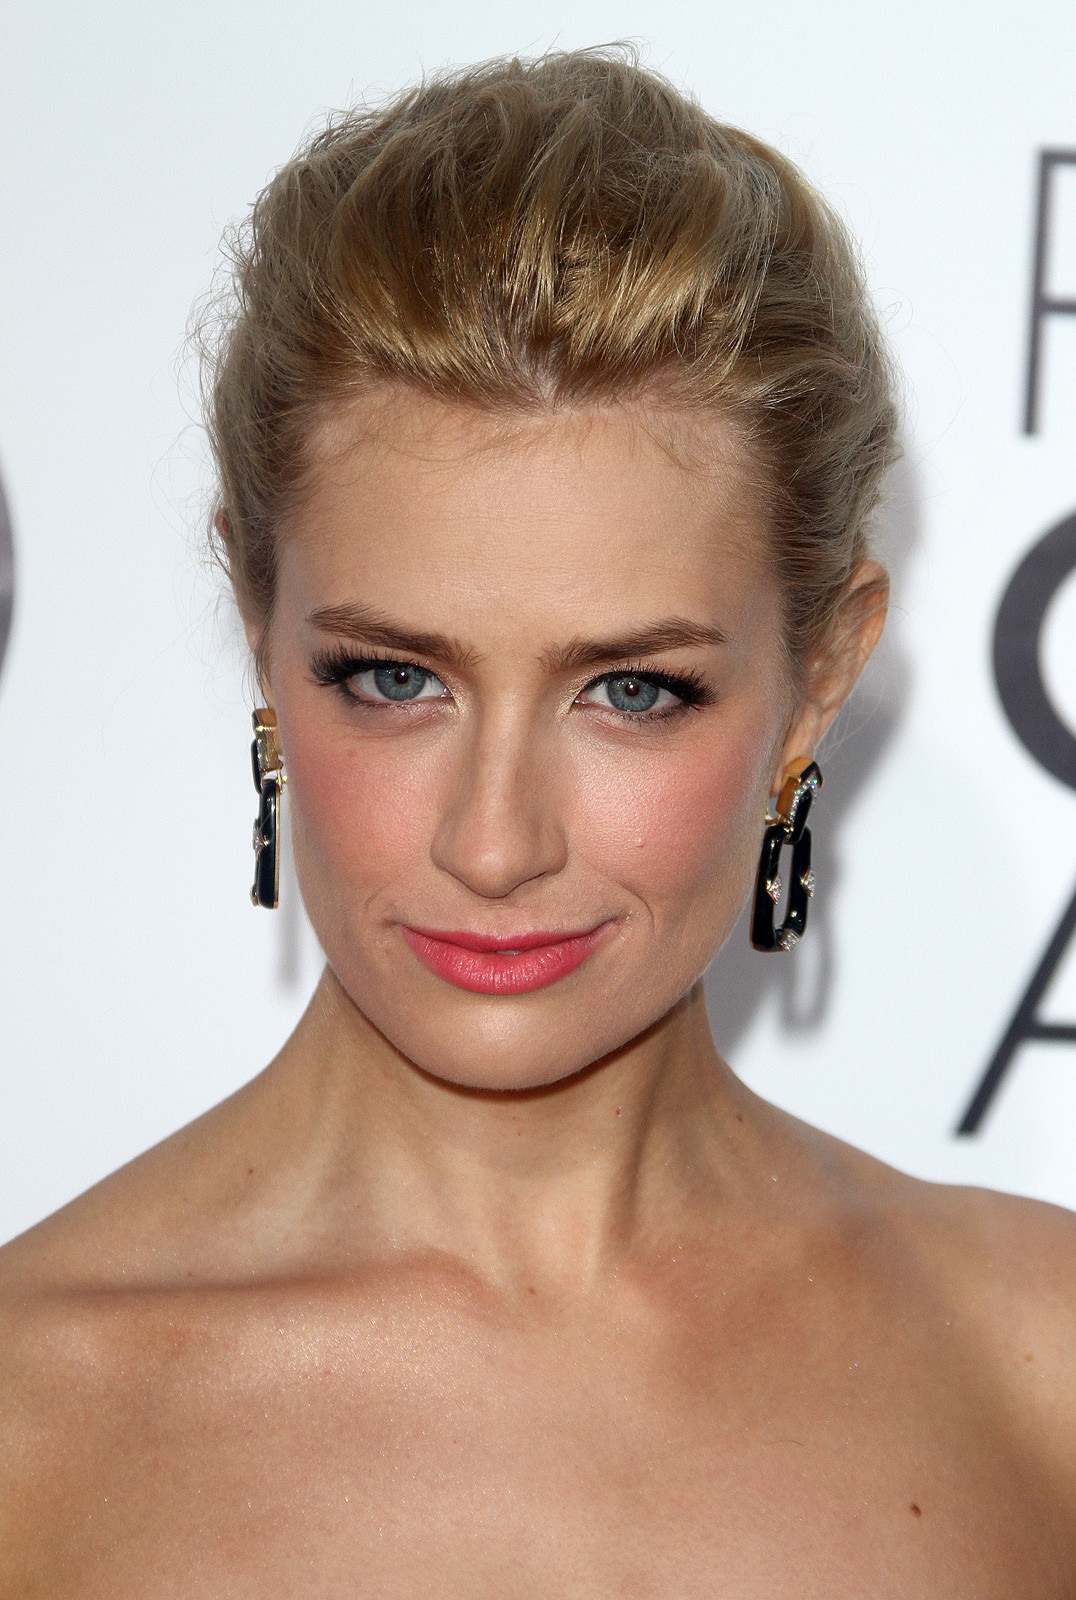 Beth Behrs Photo Gallery